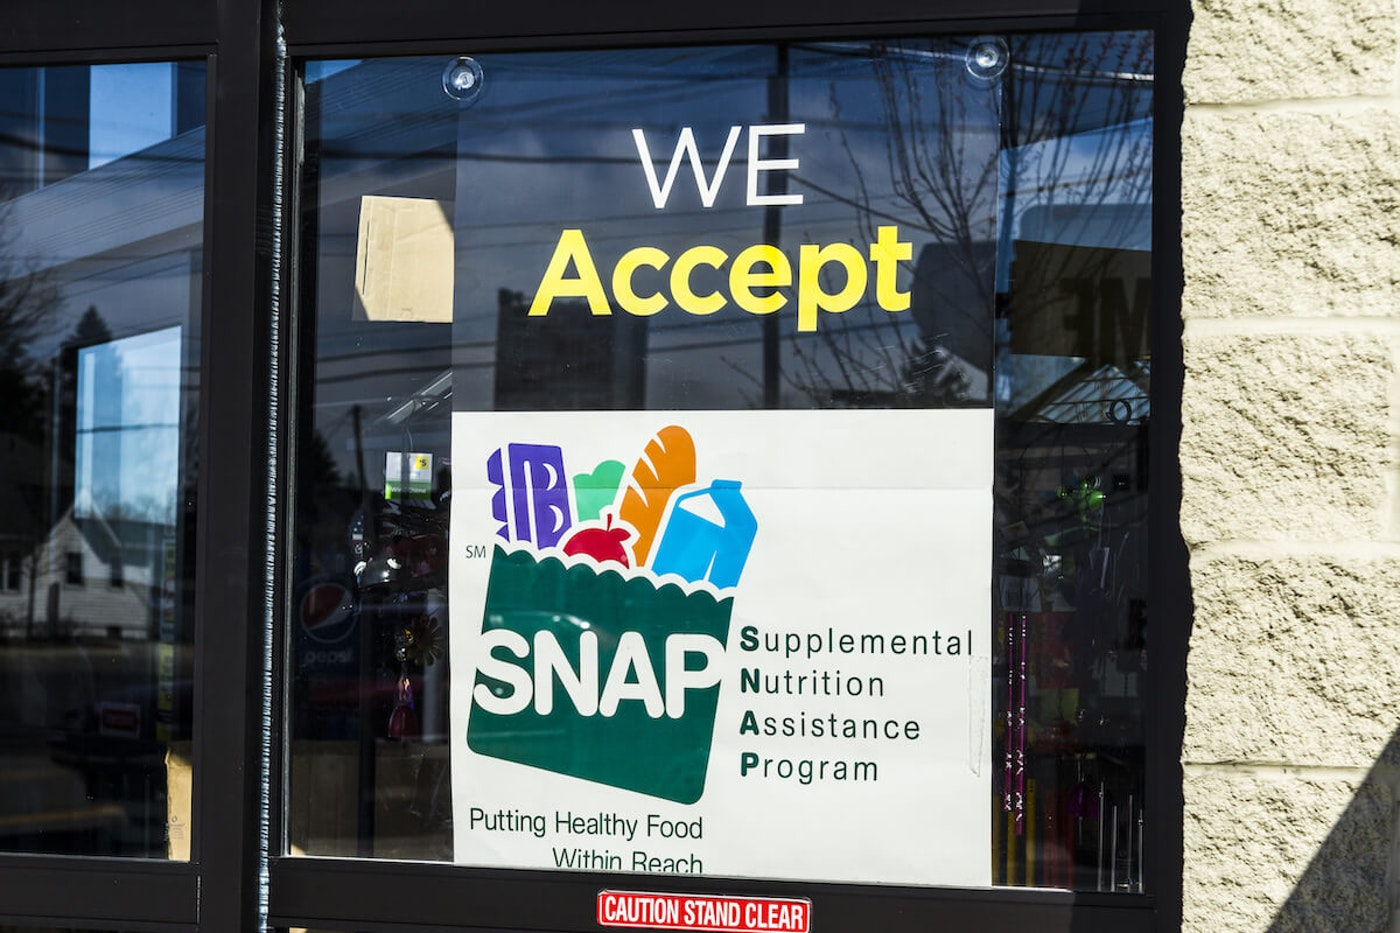 Nutrition assistance programs for financially struggling families, once referred to as food stamps, go by several names across the country including SNAP and Wisconsin FoodShare.